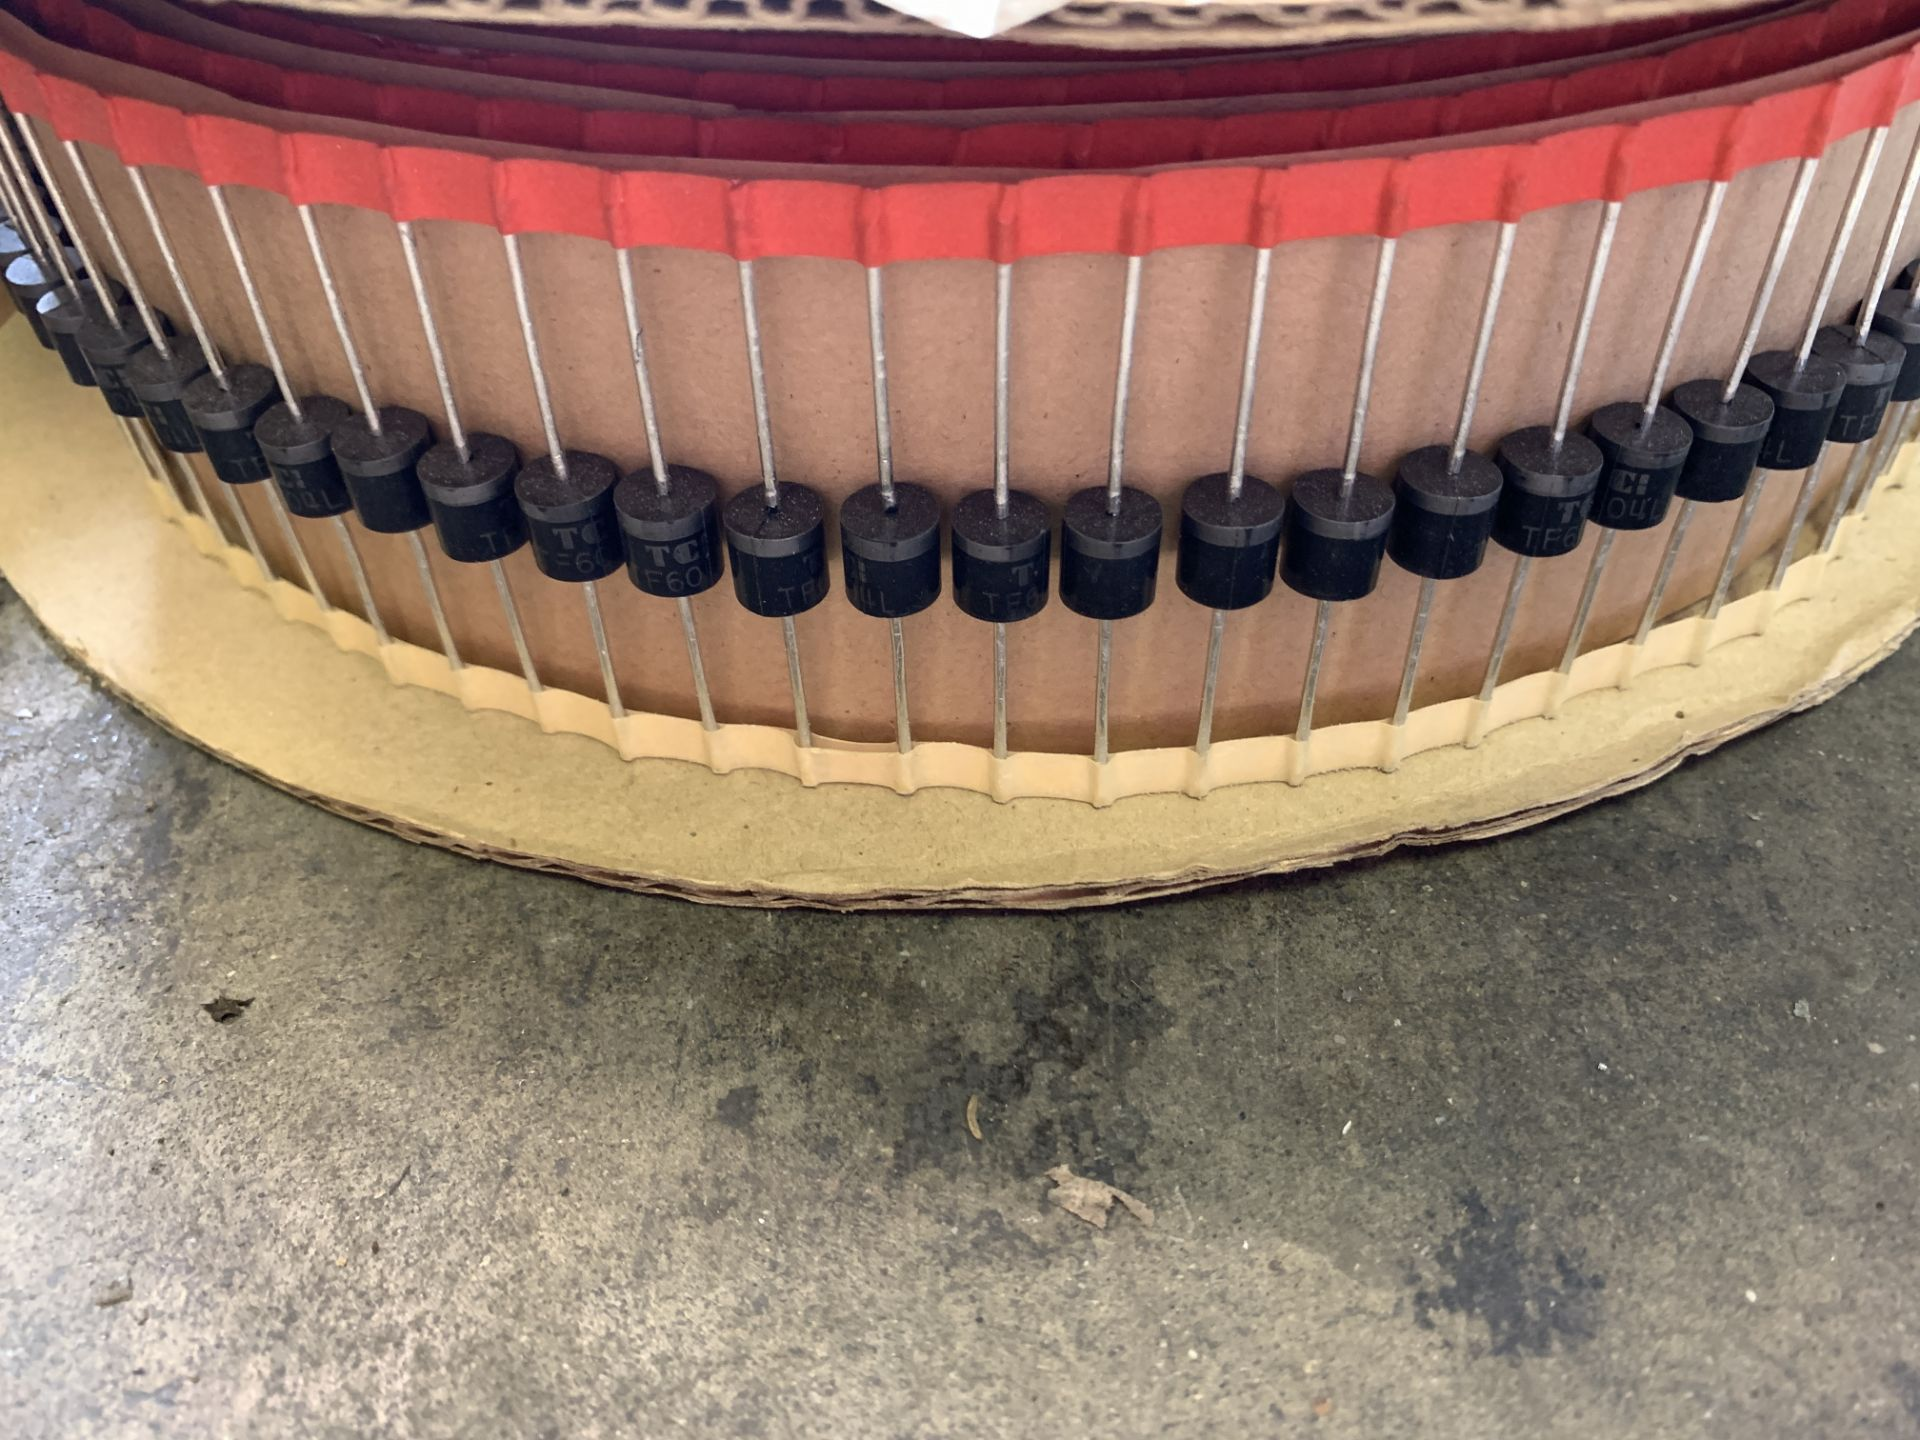 Lot 207 - Components for Boards - Taitron and FCITaitron TF604L-T6-T etc., Ship from/pick up in Los Angeles